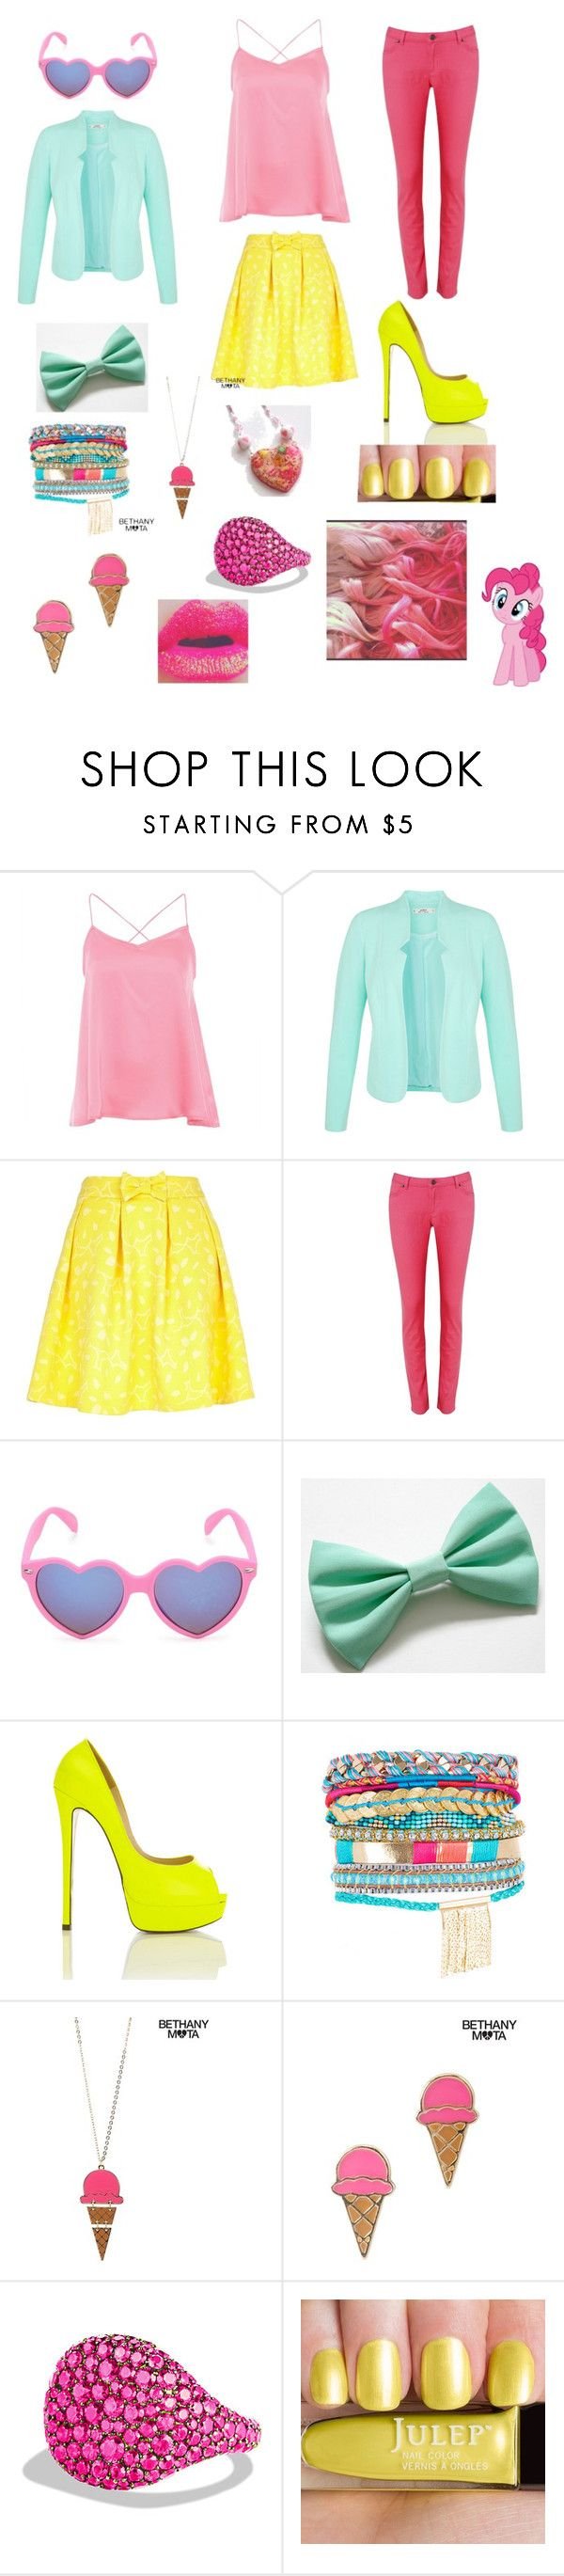 """""""P.P. Collection"""" by alex-bows ❤ liked on Polyvore featuring Alice & You, Miss Selfridge, River Island, Poem, With Love From CA, Aéropostale, David Yurman and Cotton Candy"""